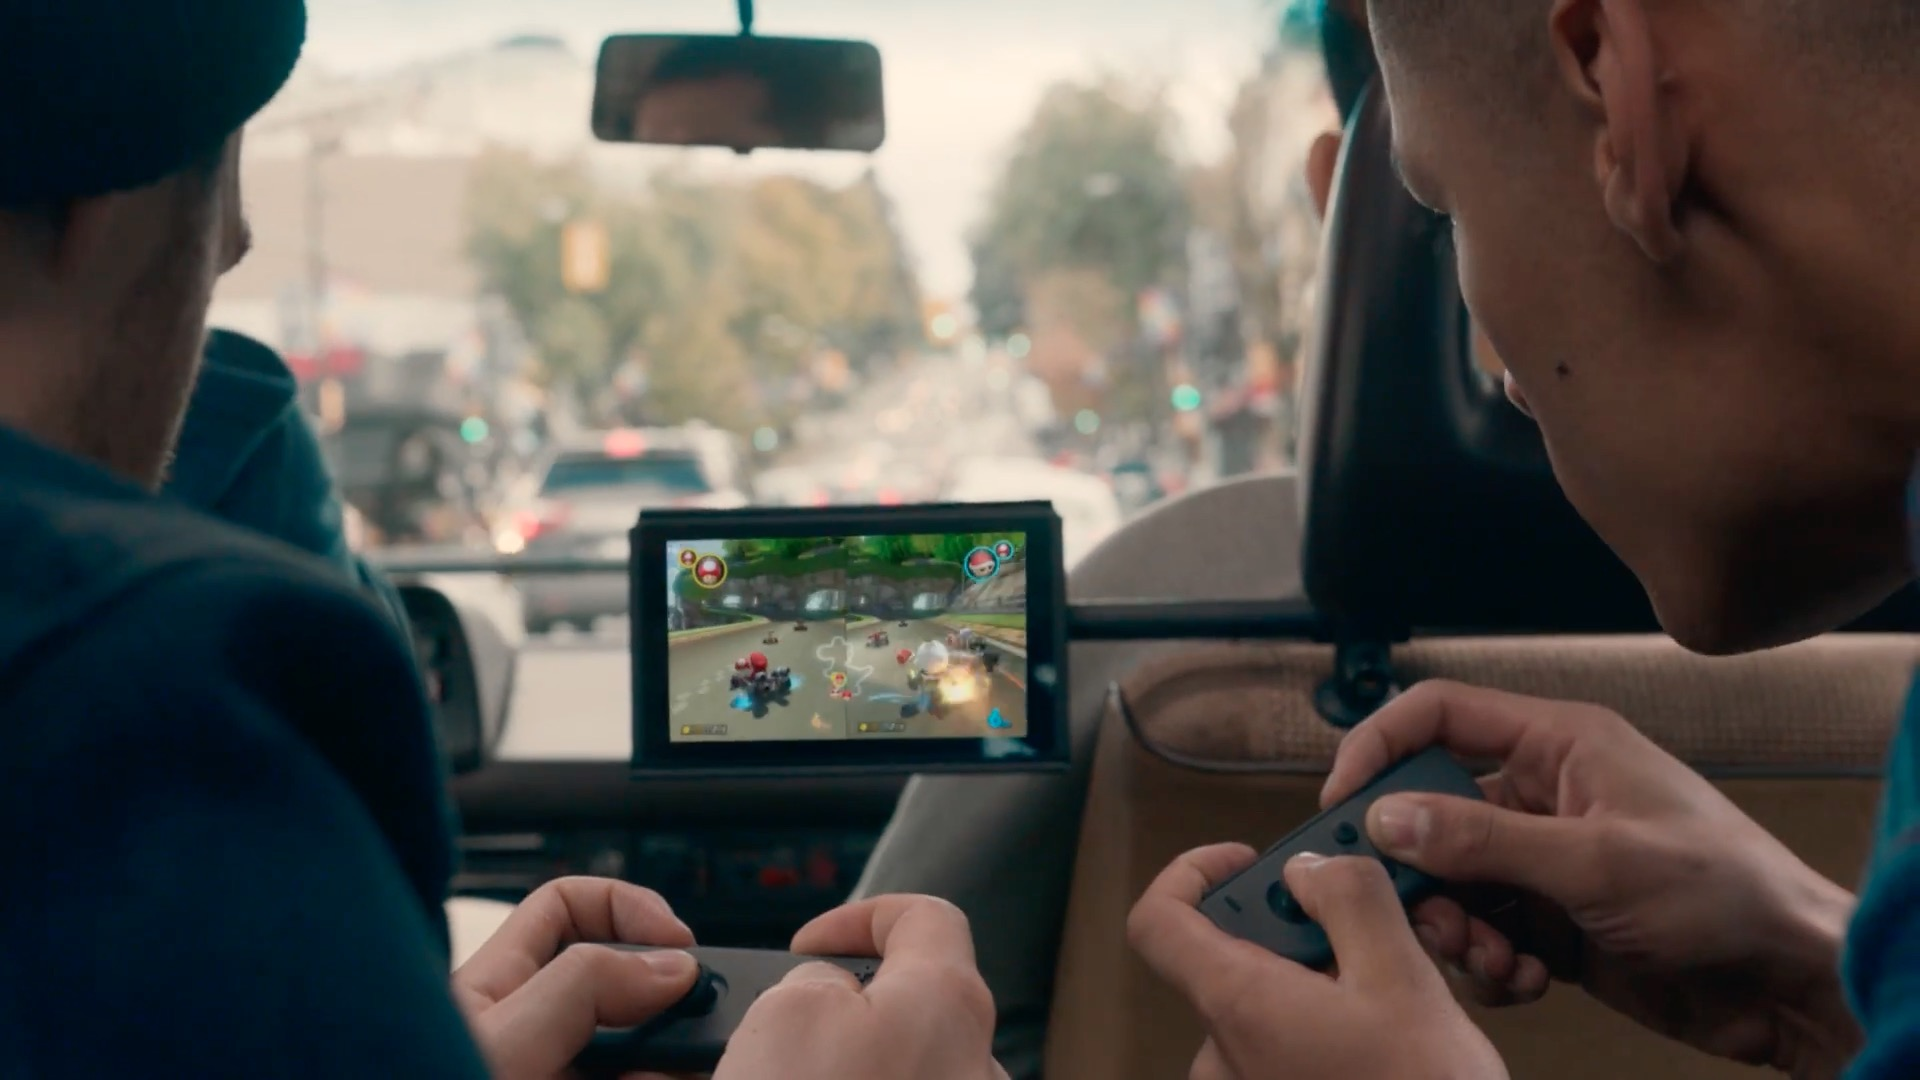 Modojo   Ten Mo: 10 Games We'd Love To See Reborn On The Nintendo Switch